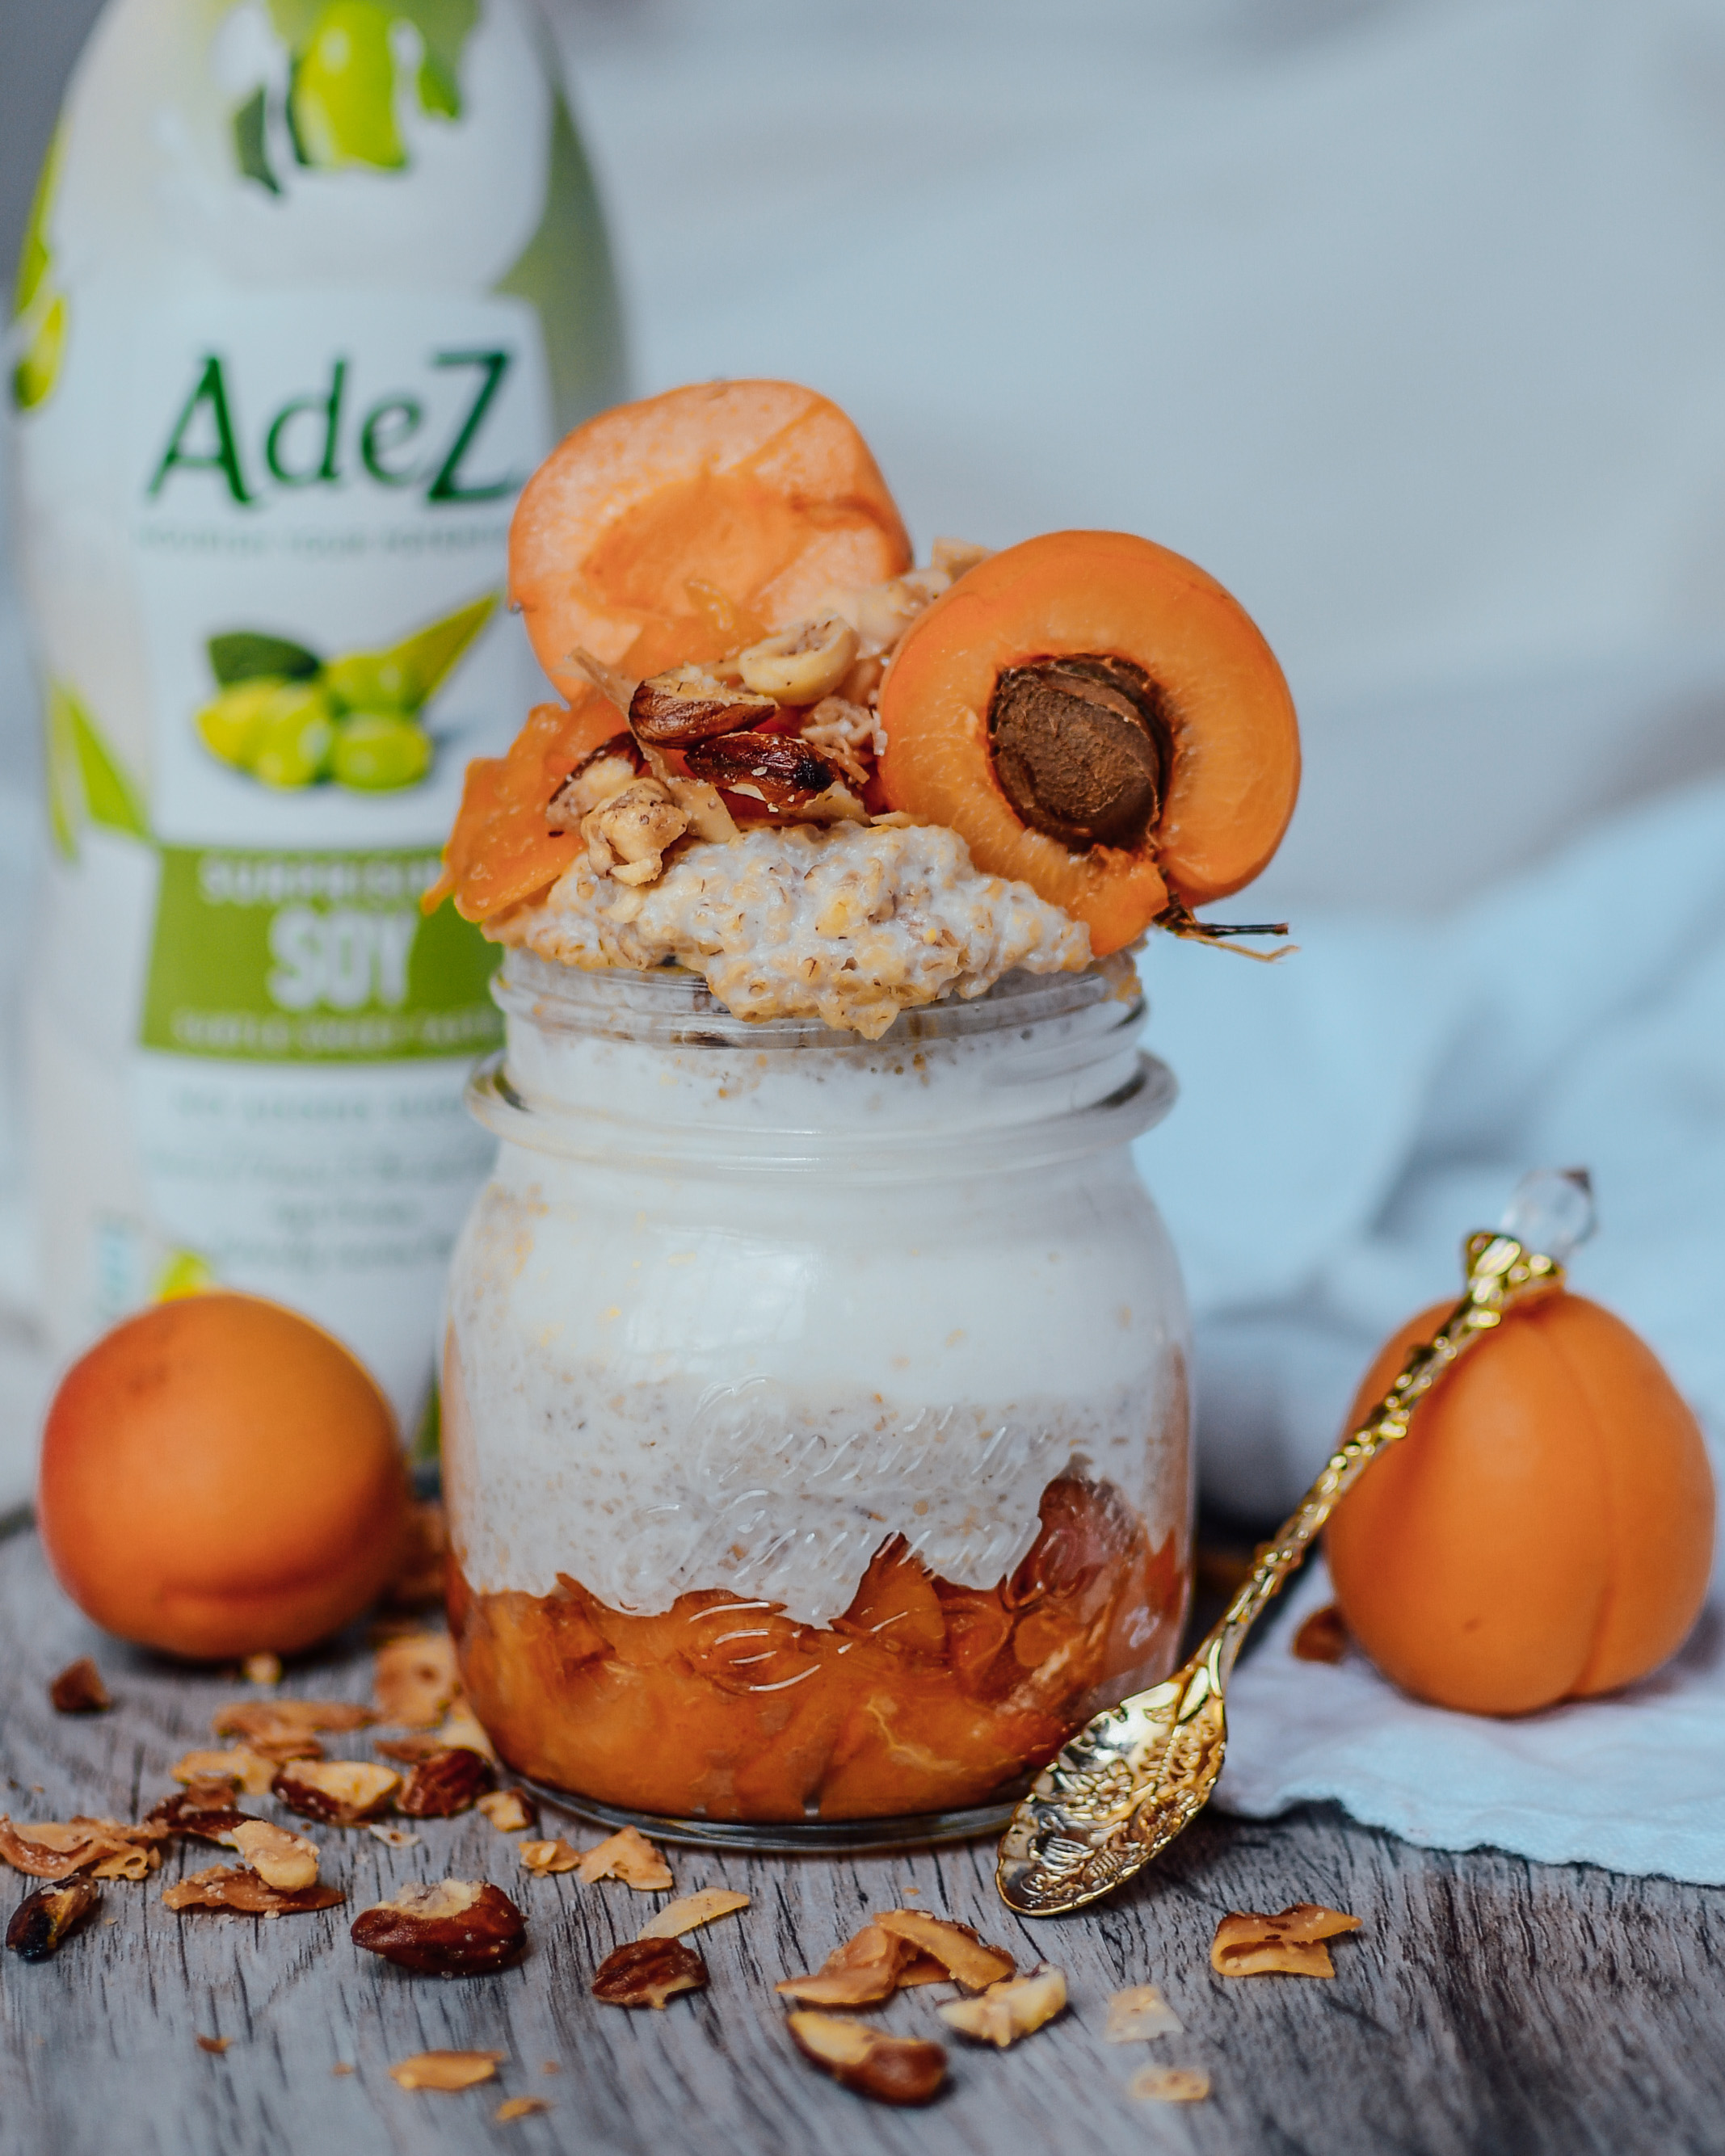 Apricot breakfast recipe